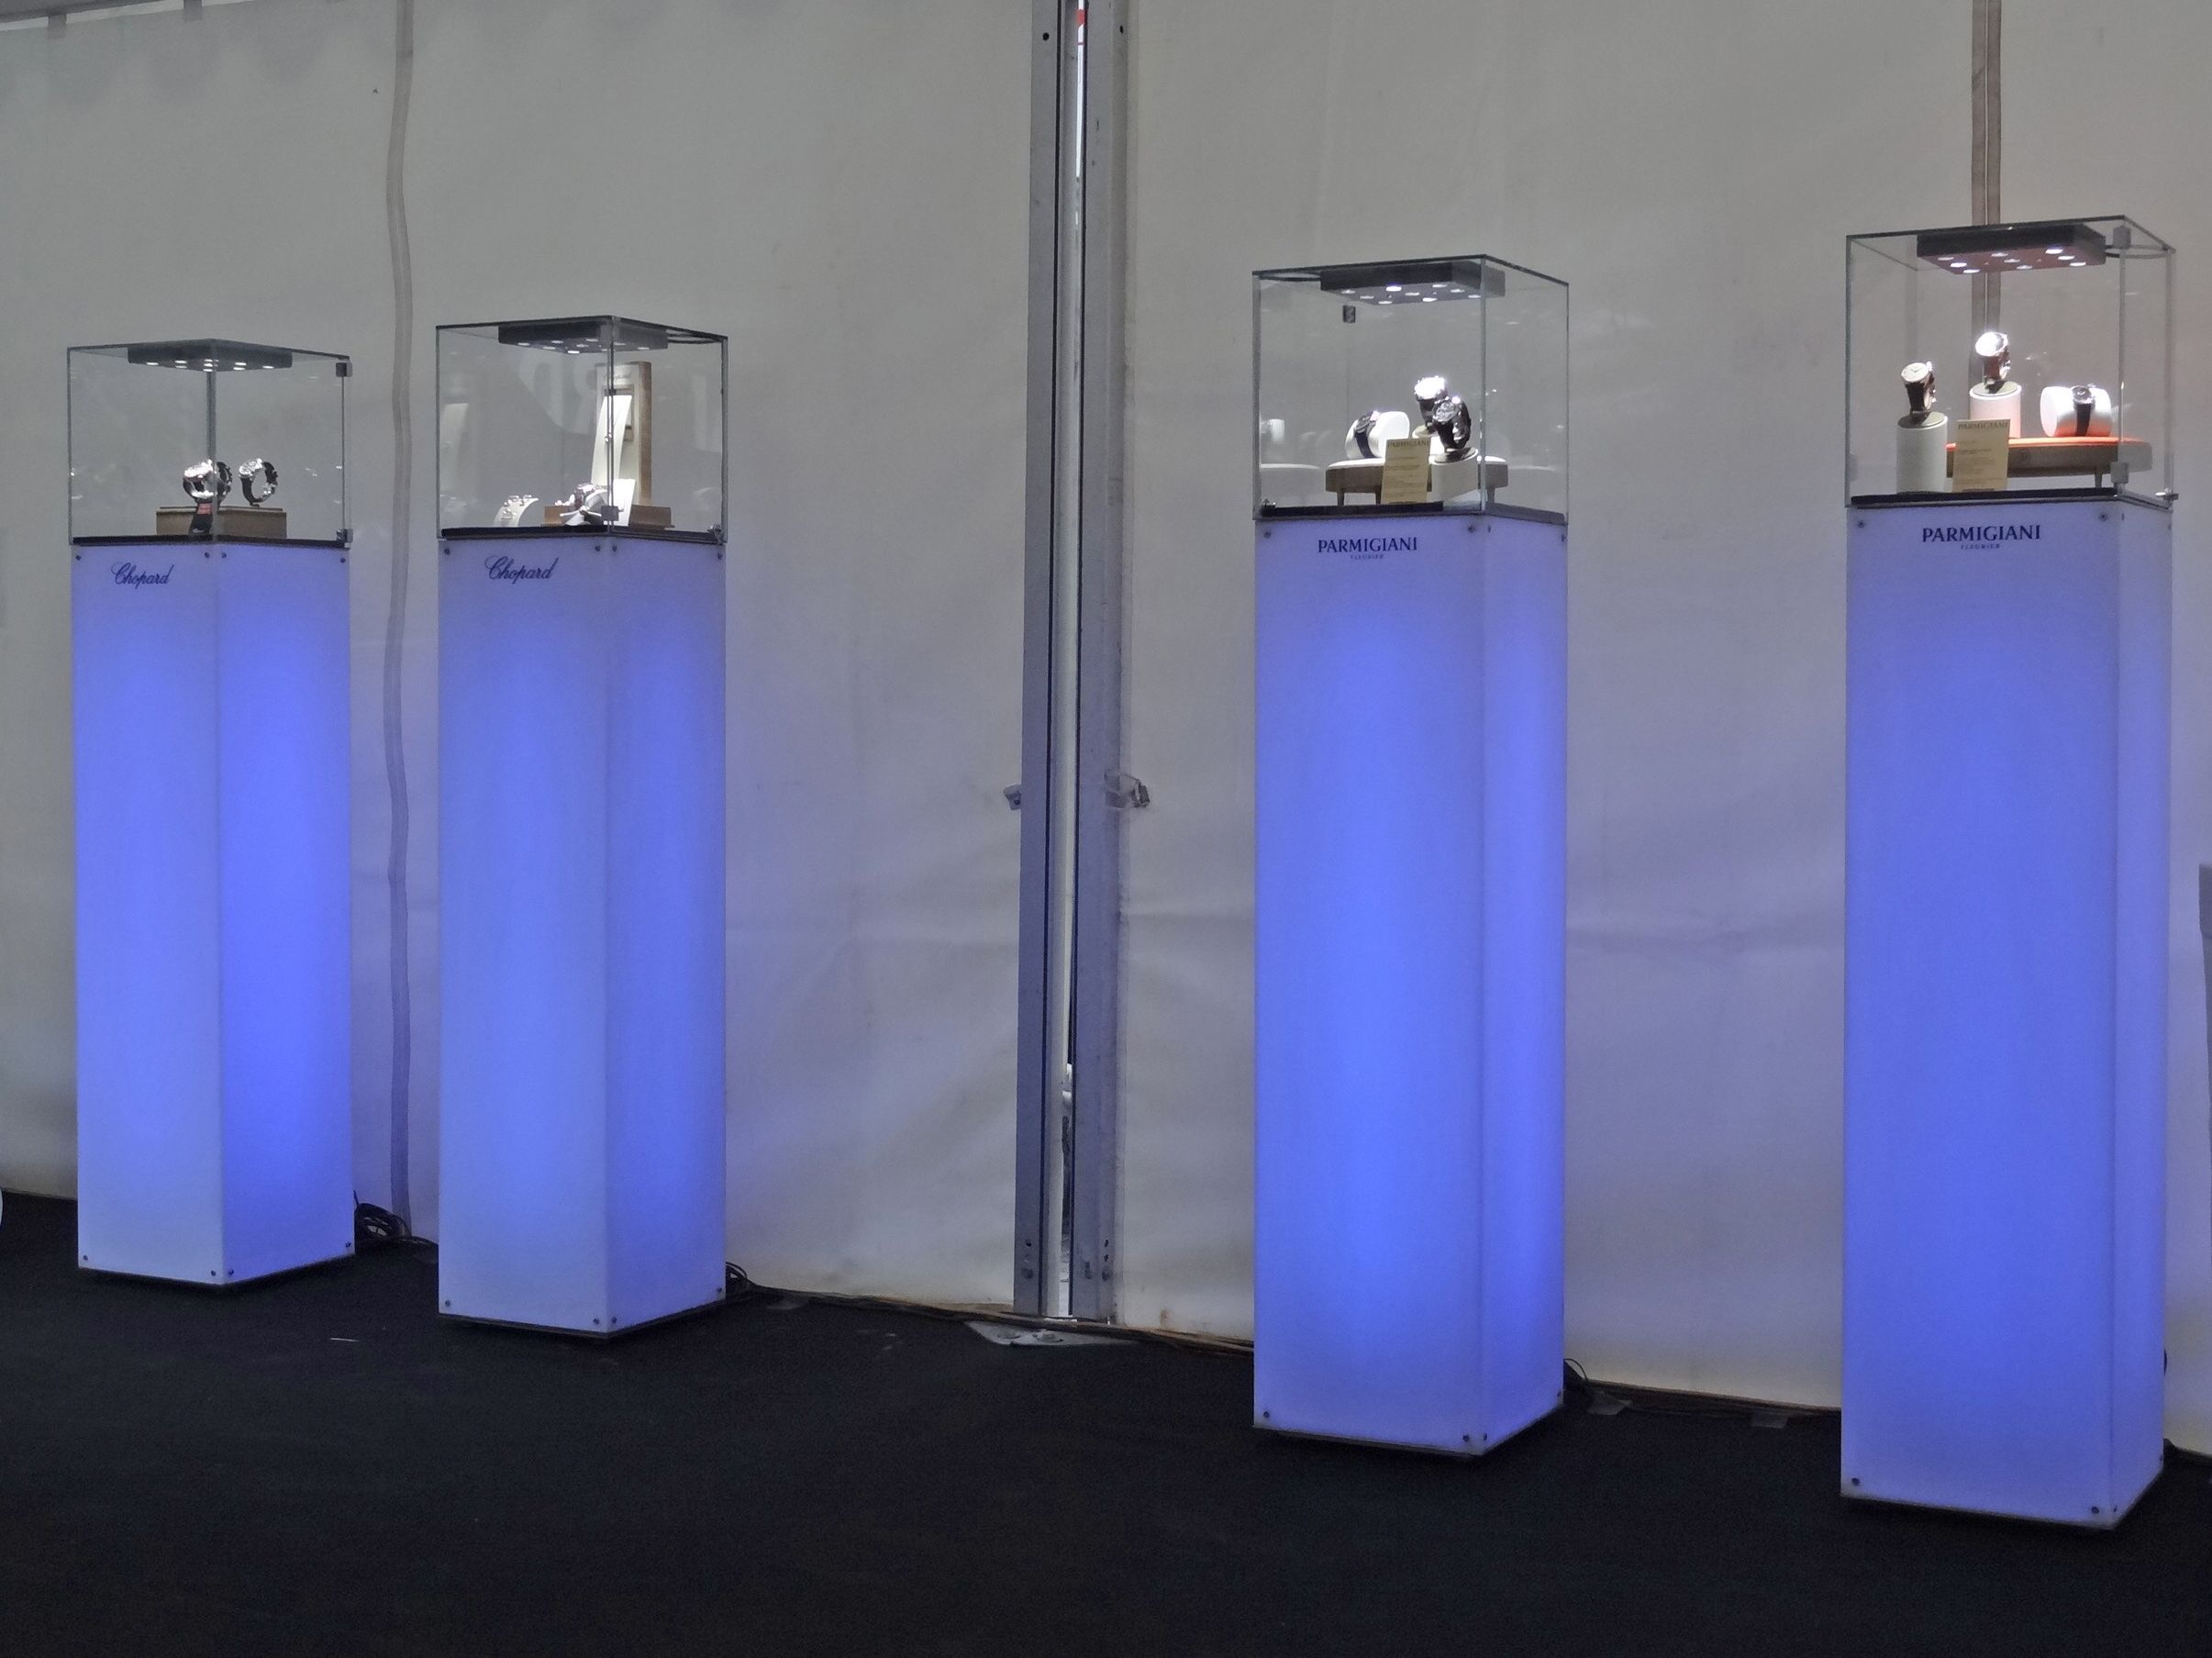 Monolith DMX : luminous #displaycase that changes color at #Guillard joailliers >>more>>http://dietlin.ch/page.php?id=2860&gr=103&nv=4